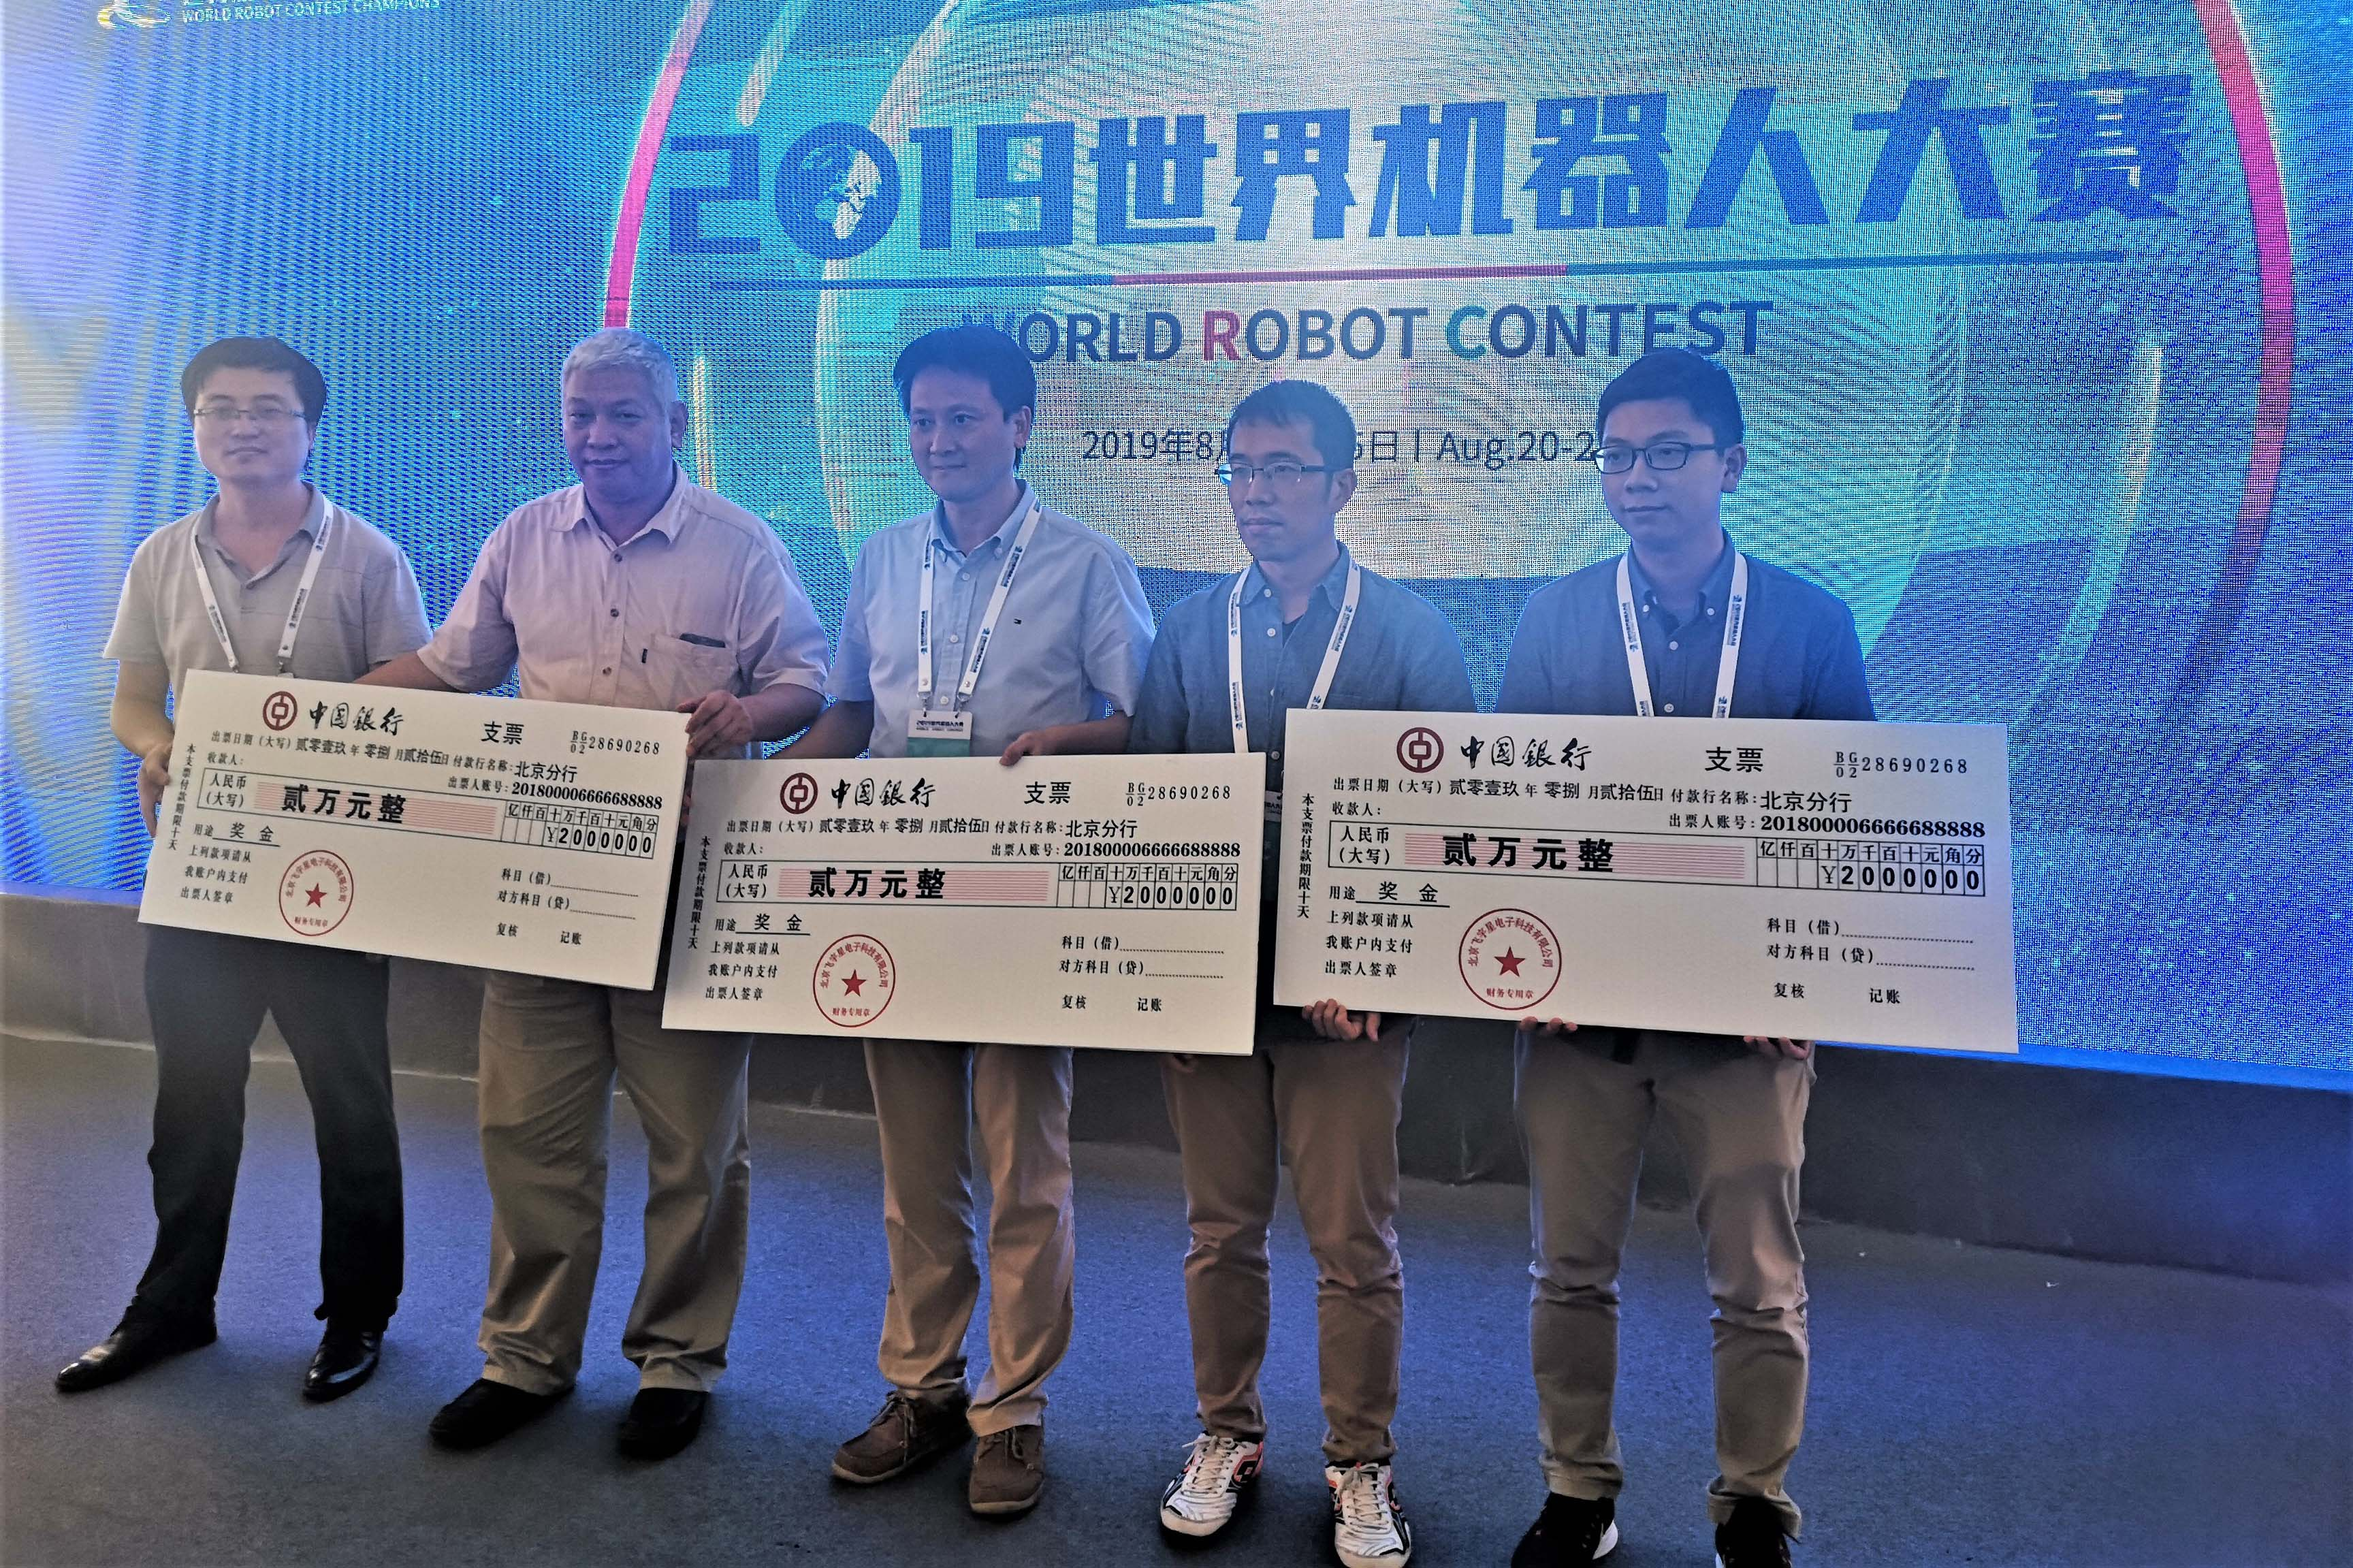 Two teams formed by UM and HKU win three championships at the WRC's world robot contest.